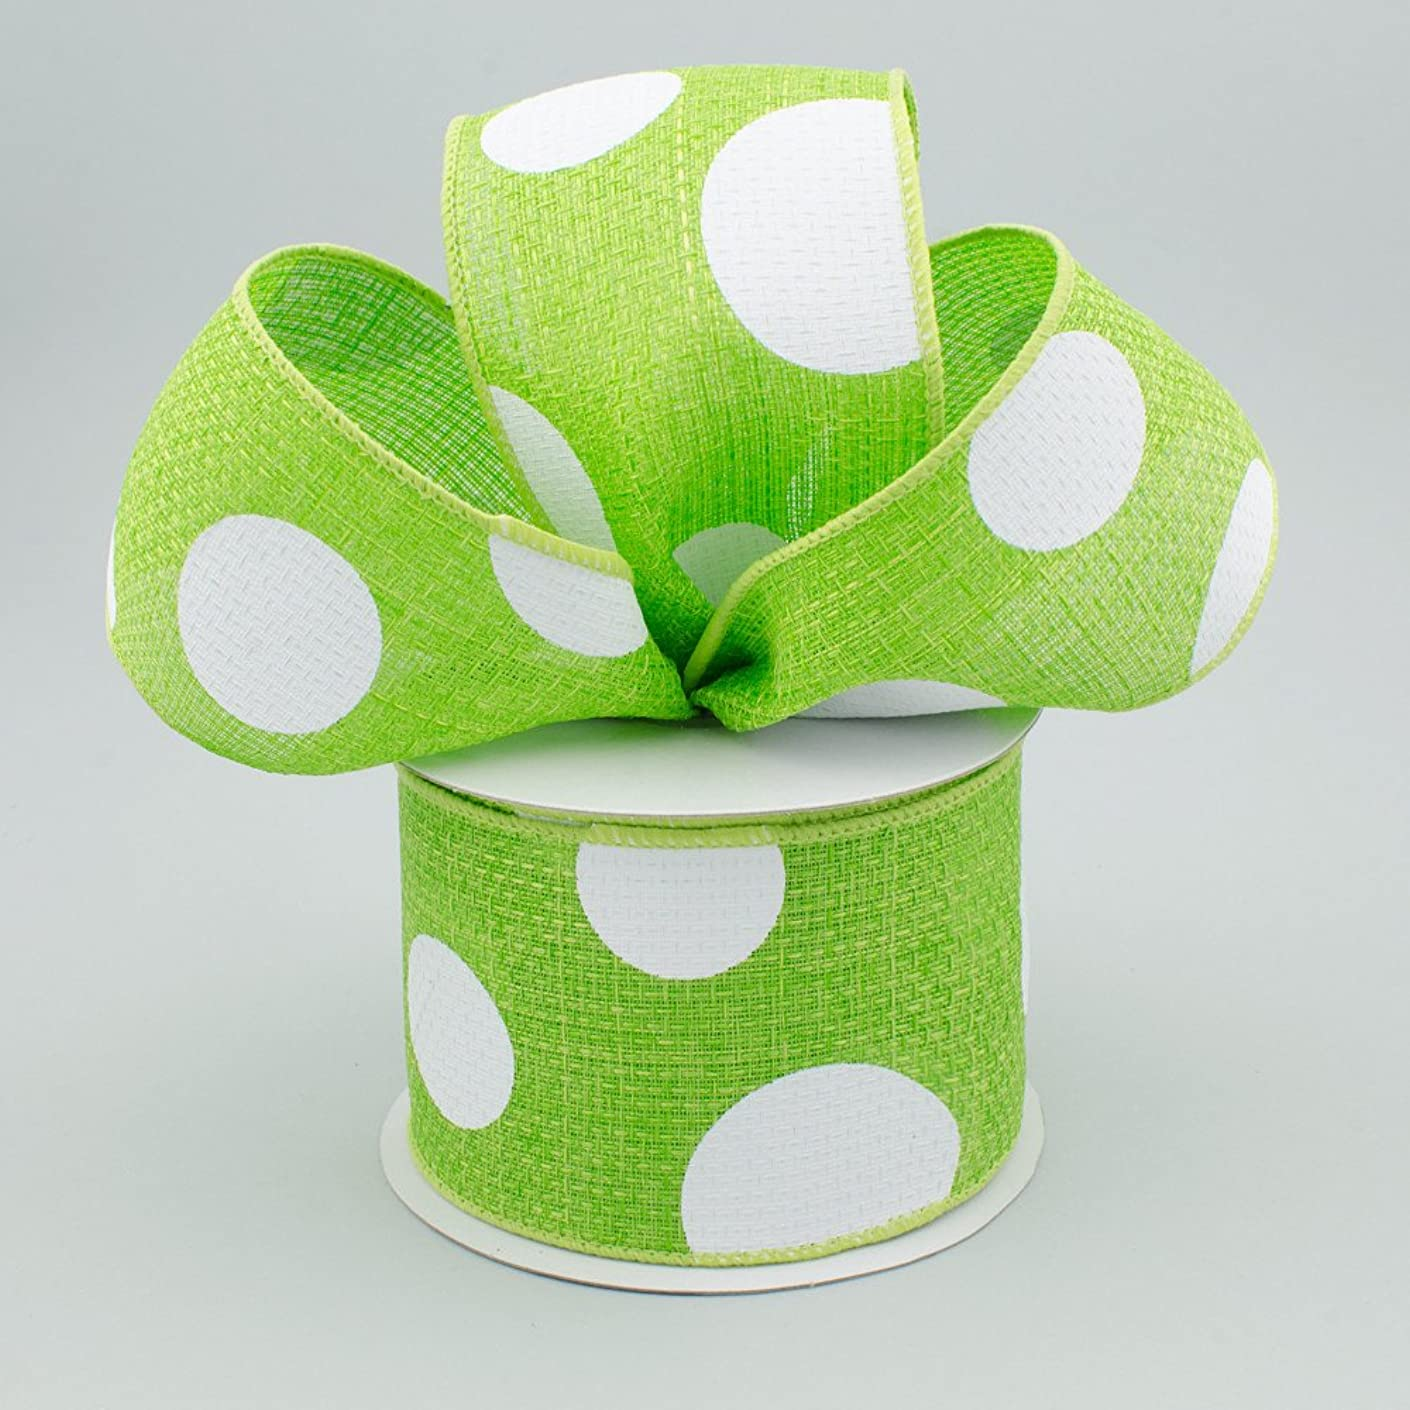 Giant Multi Dots Faux Burlap Wired Edge Ribbon - 2.5 Inch x 10 yards (Lime Green, White) : RG0120033